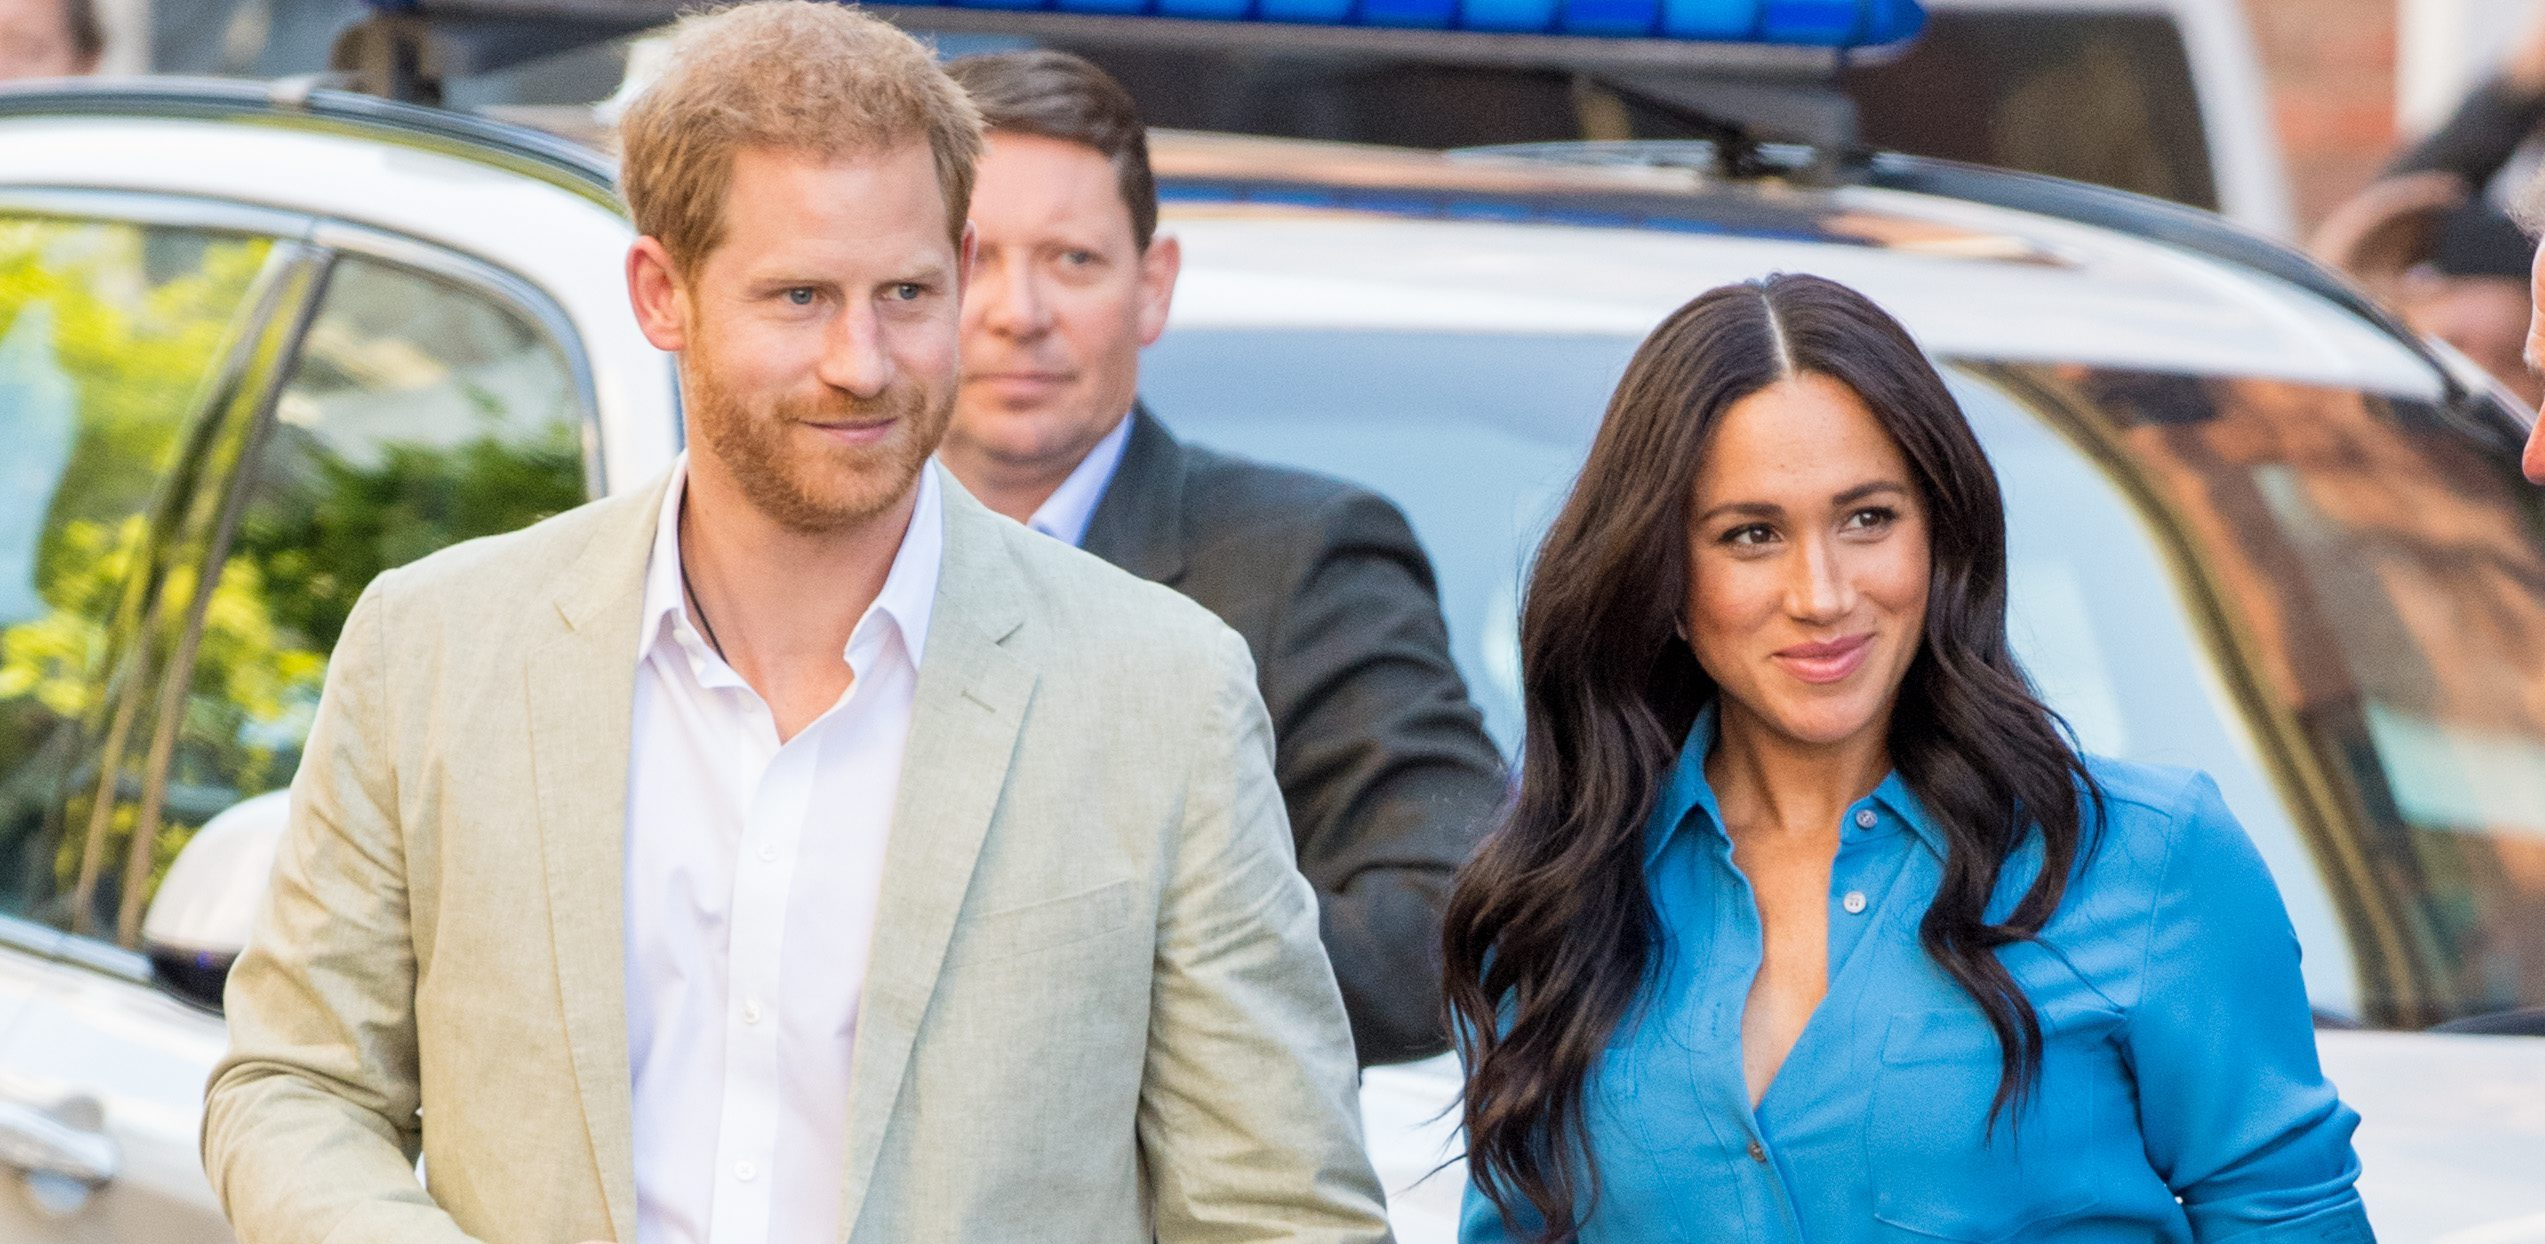 Bookies predict Meghan and Harry will announce second pregnancy in coming weeks